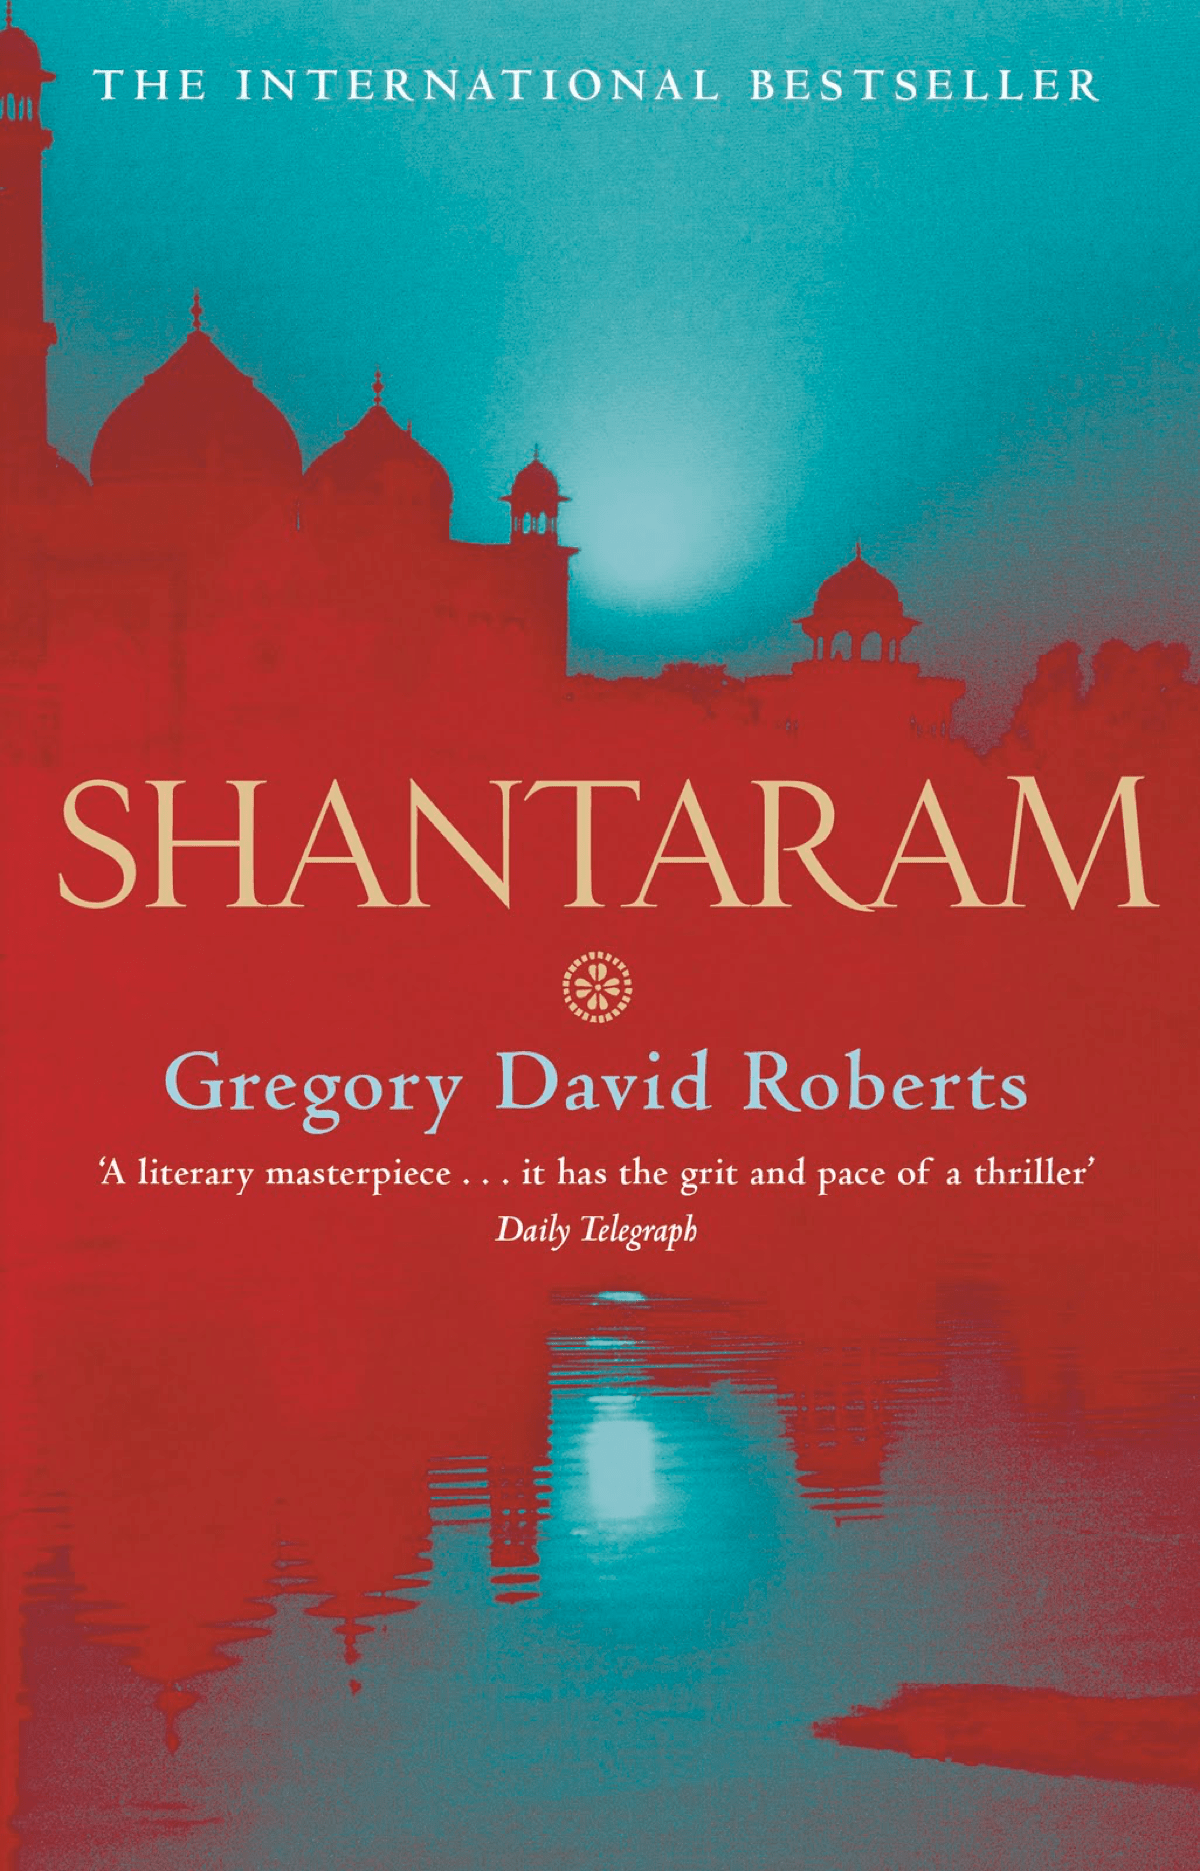 Cover for the Shantaram book.